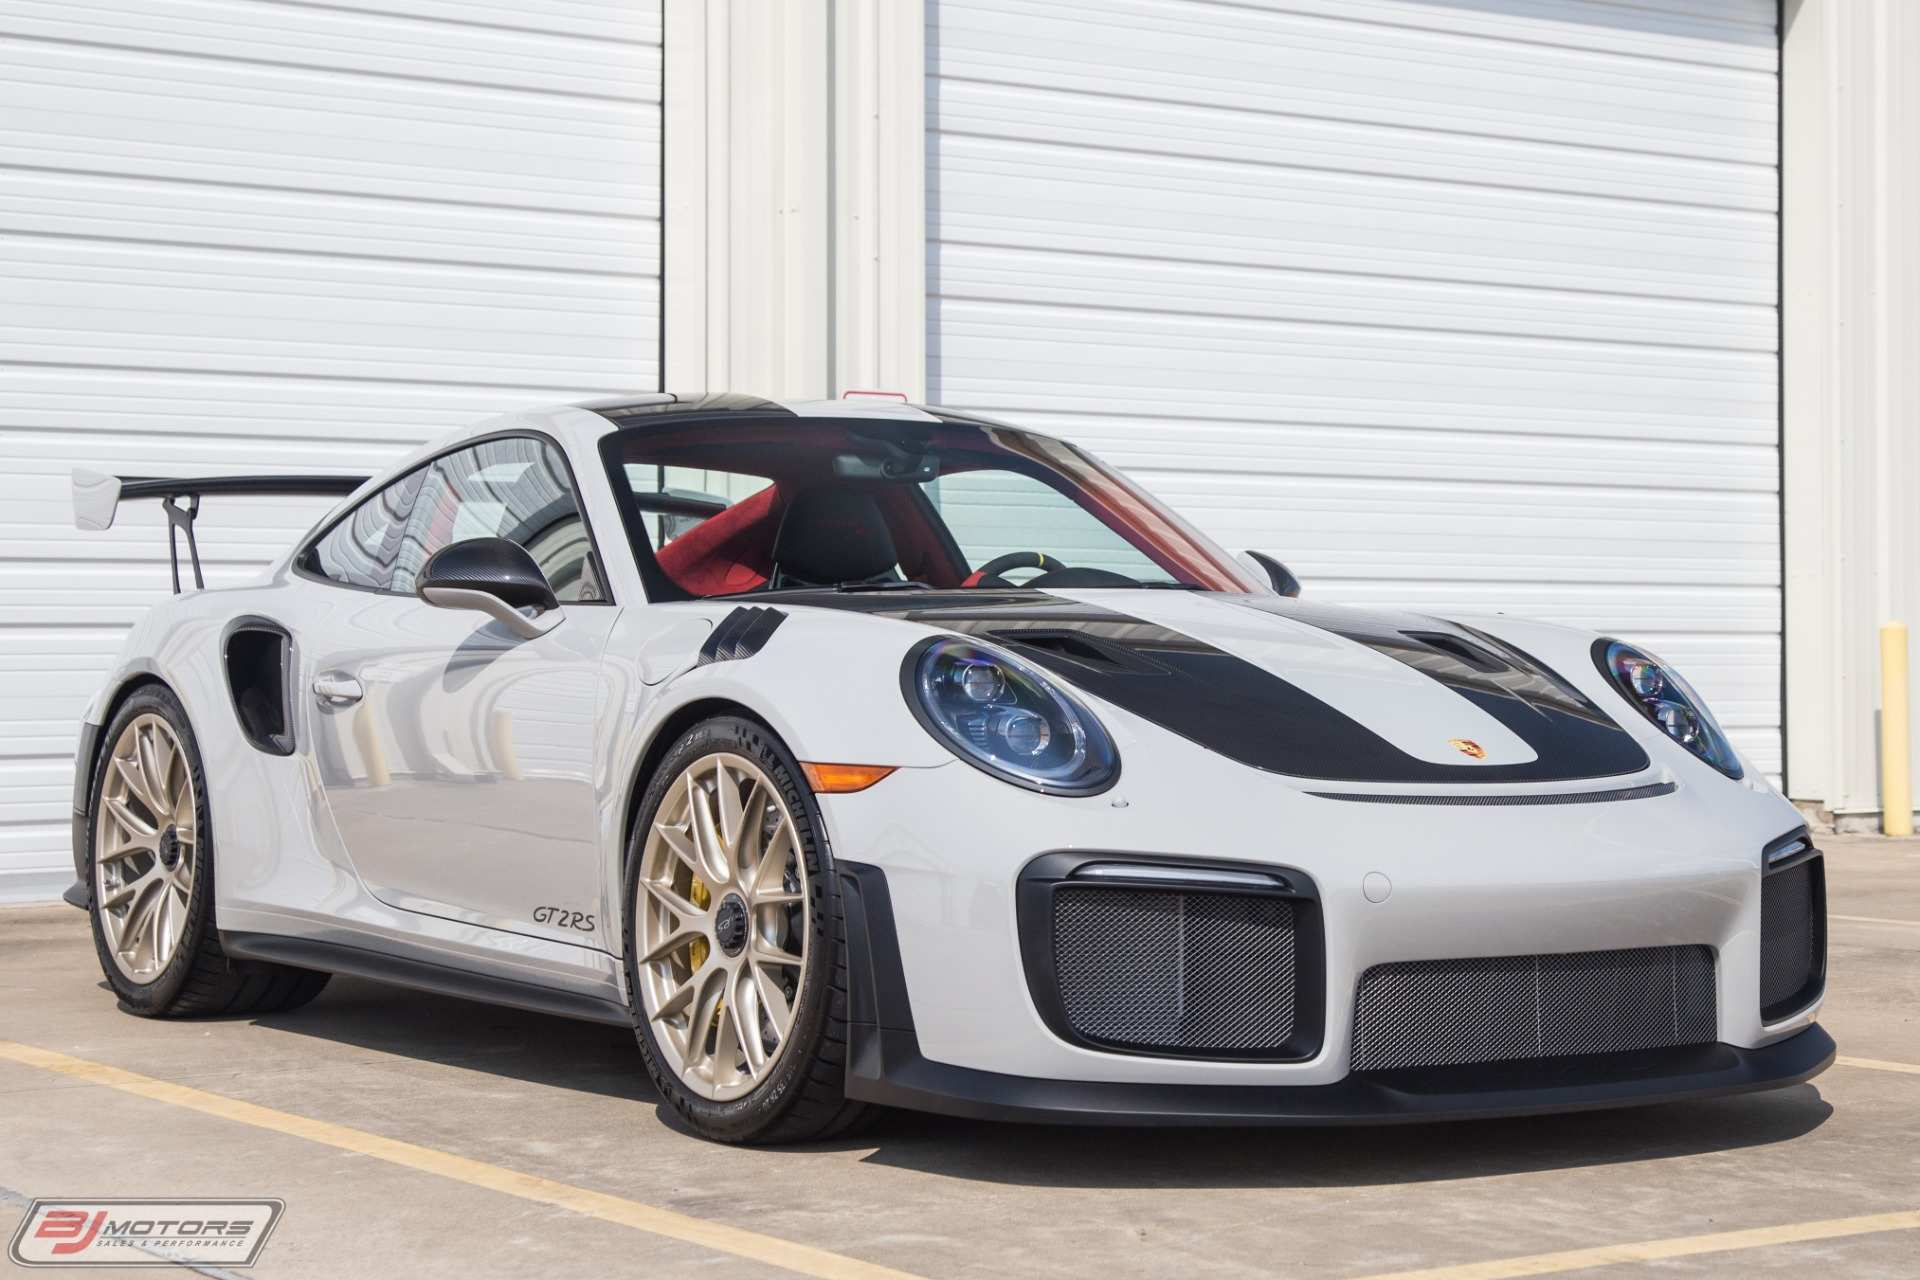 62 Best 2019 Porsche Gt2 Rs For Sale Performance And New Engine